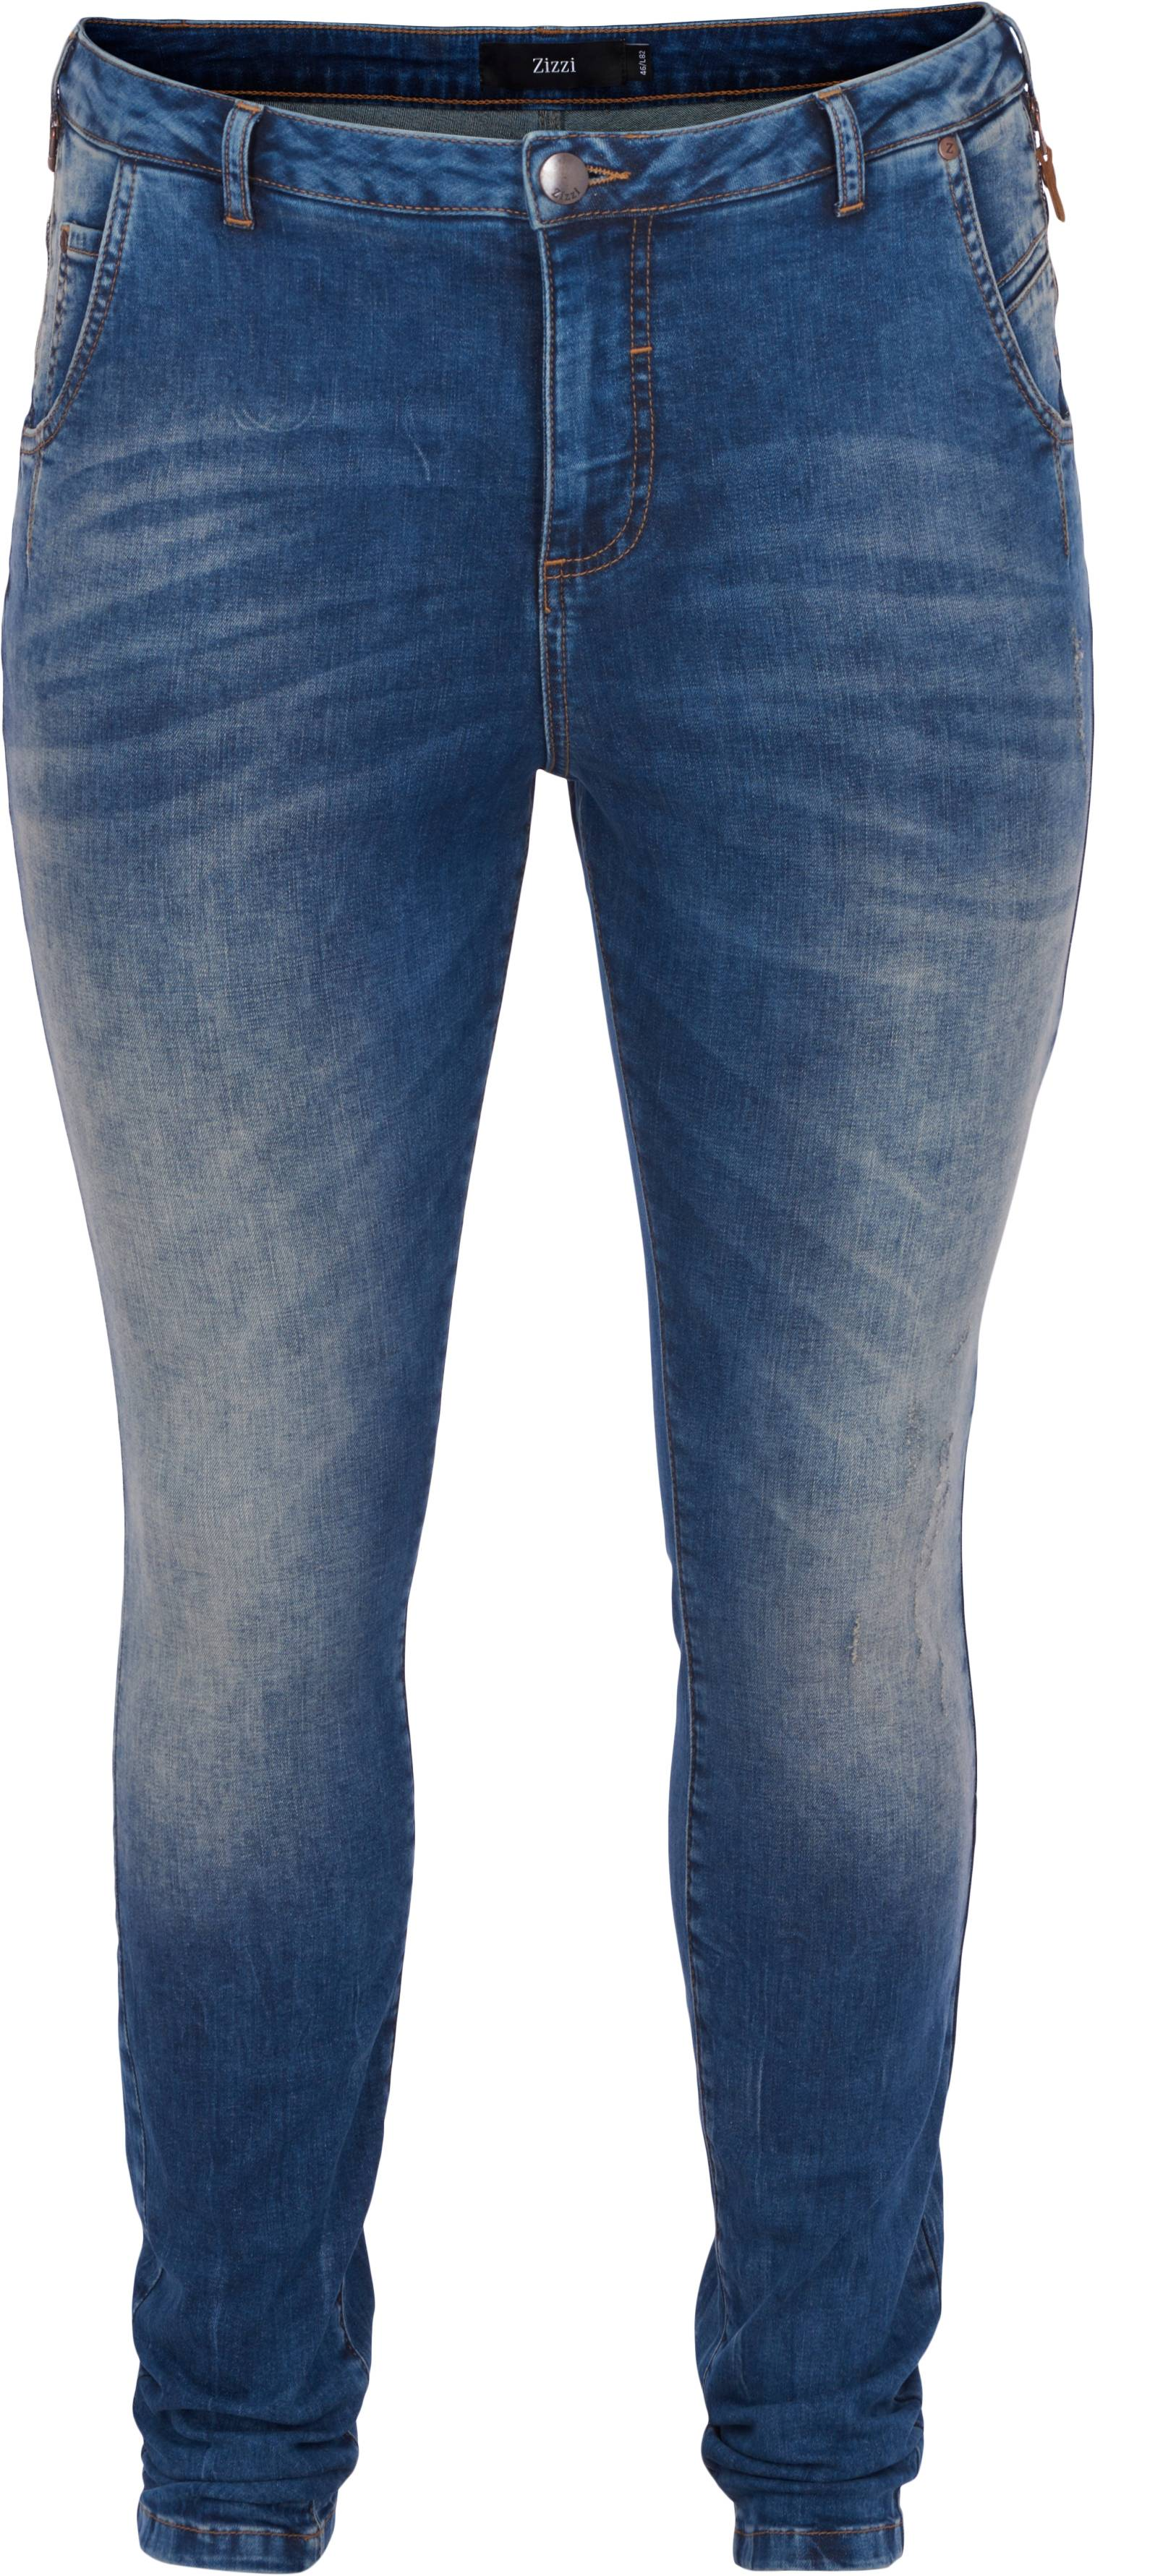 Jeans Nille, Extra slim thumbnail